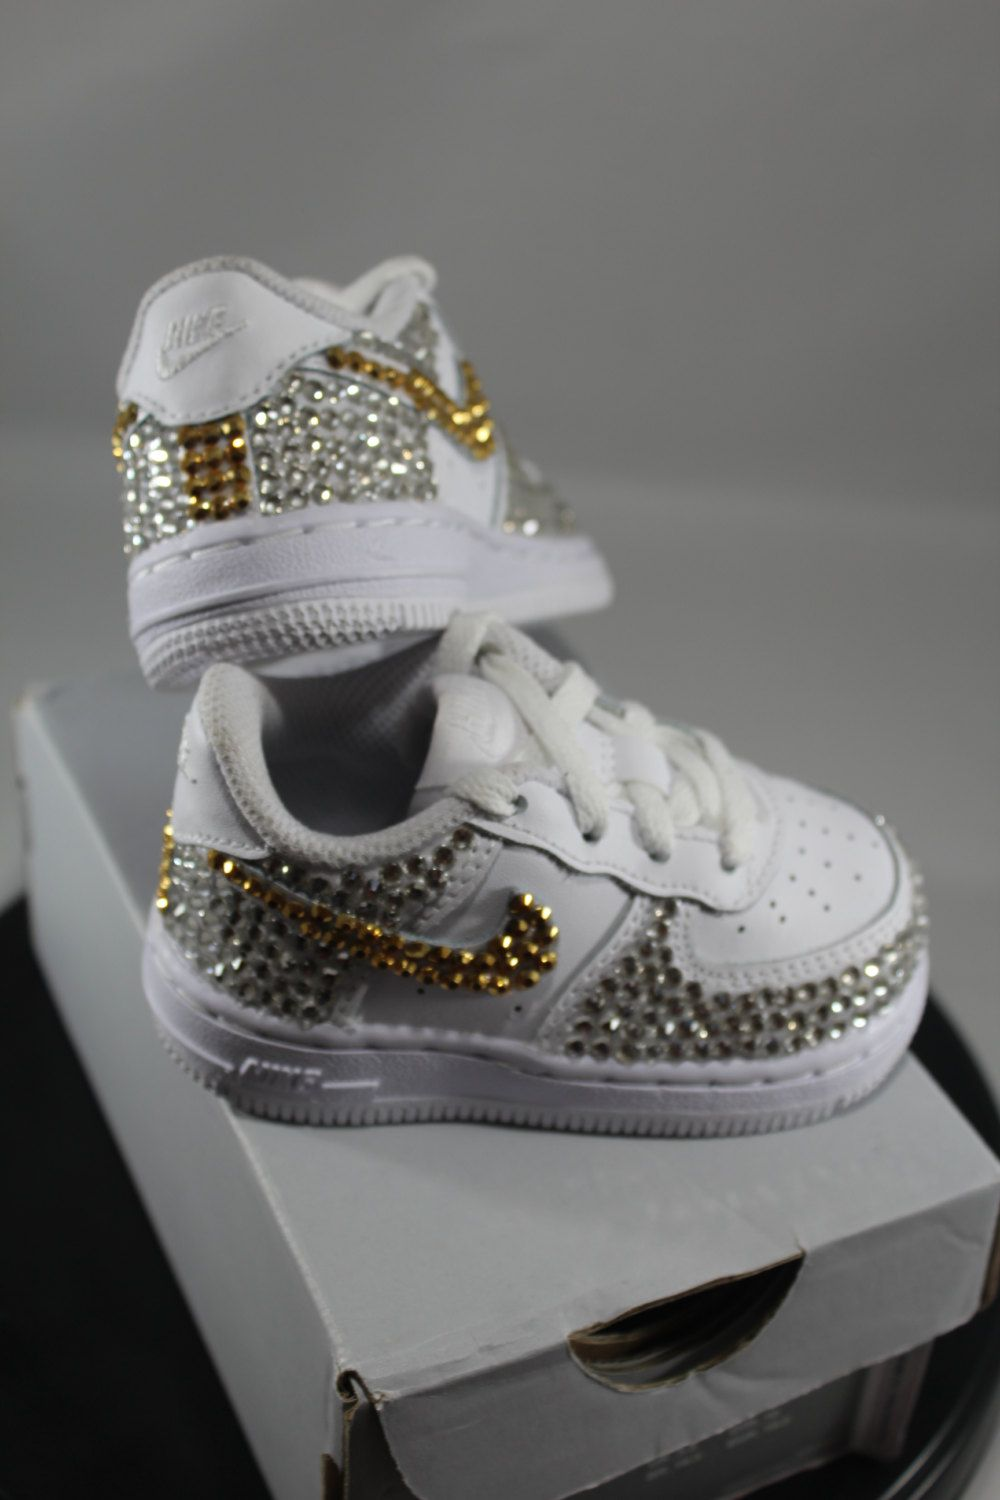 Custom Bling Air Force Ones- Bling Tennis Shoes- Bling   Pearls- Baby Bling  Nikes- AF1s- Custom Tennis Shoes- Bedazzled Nikes- Bling Shoes by ... ed628b977b16